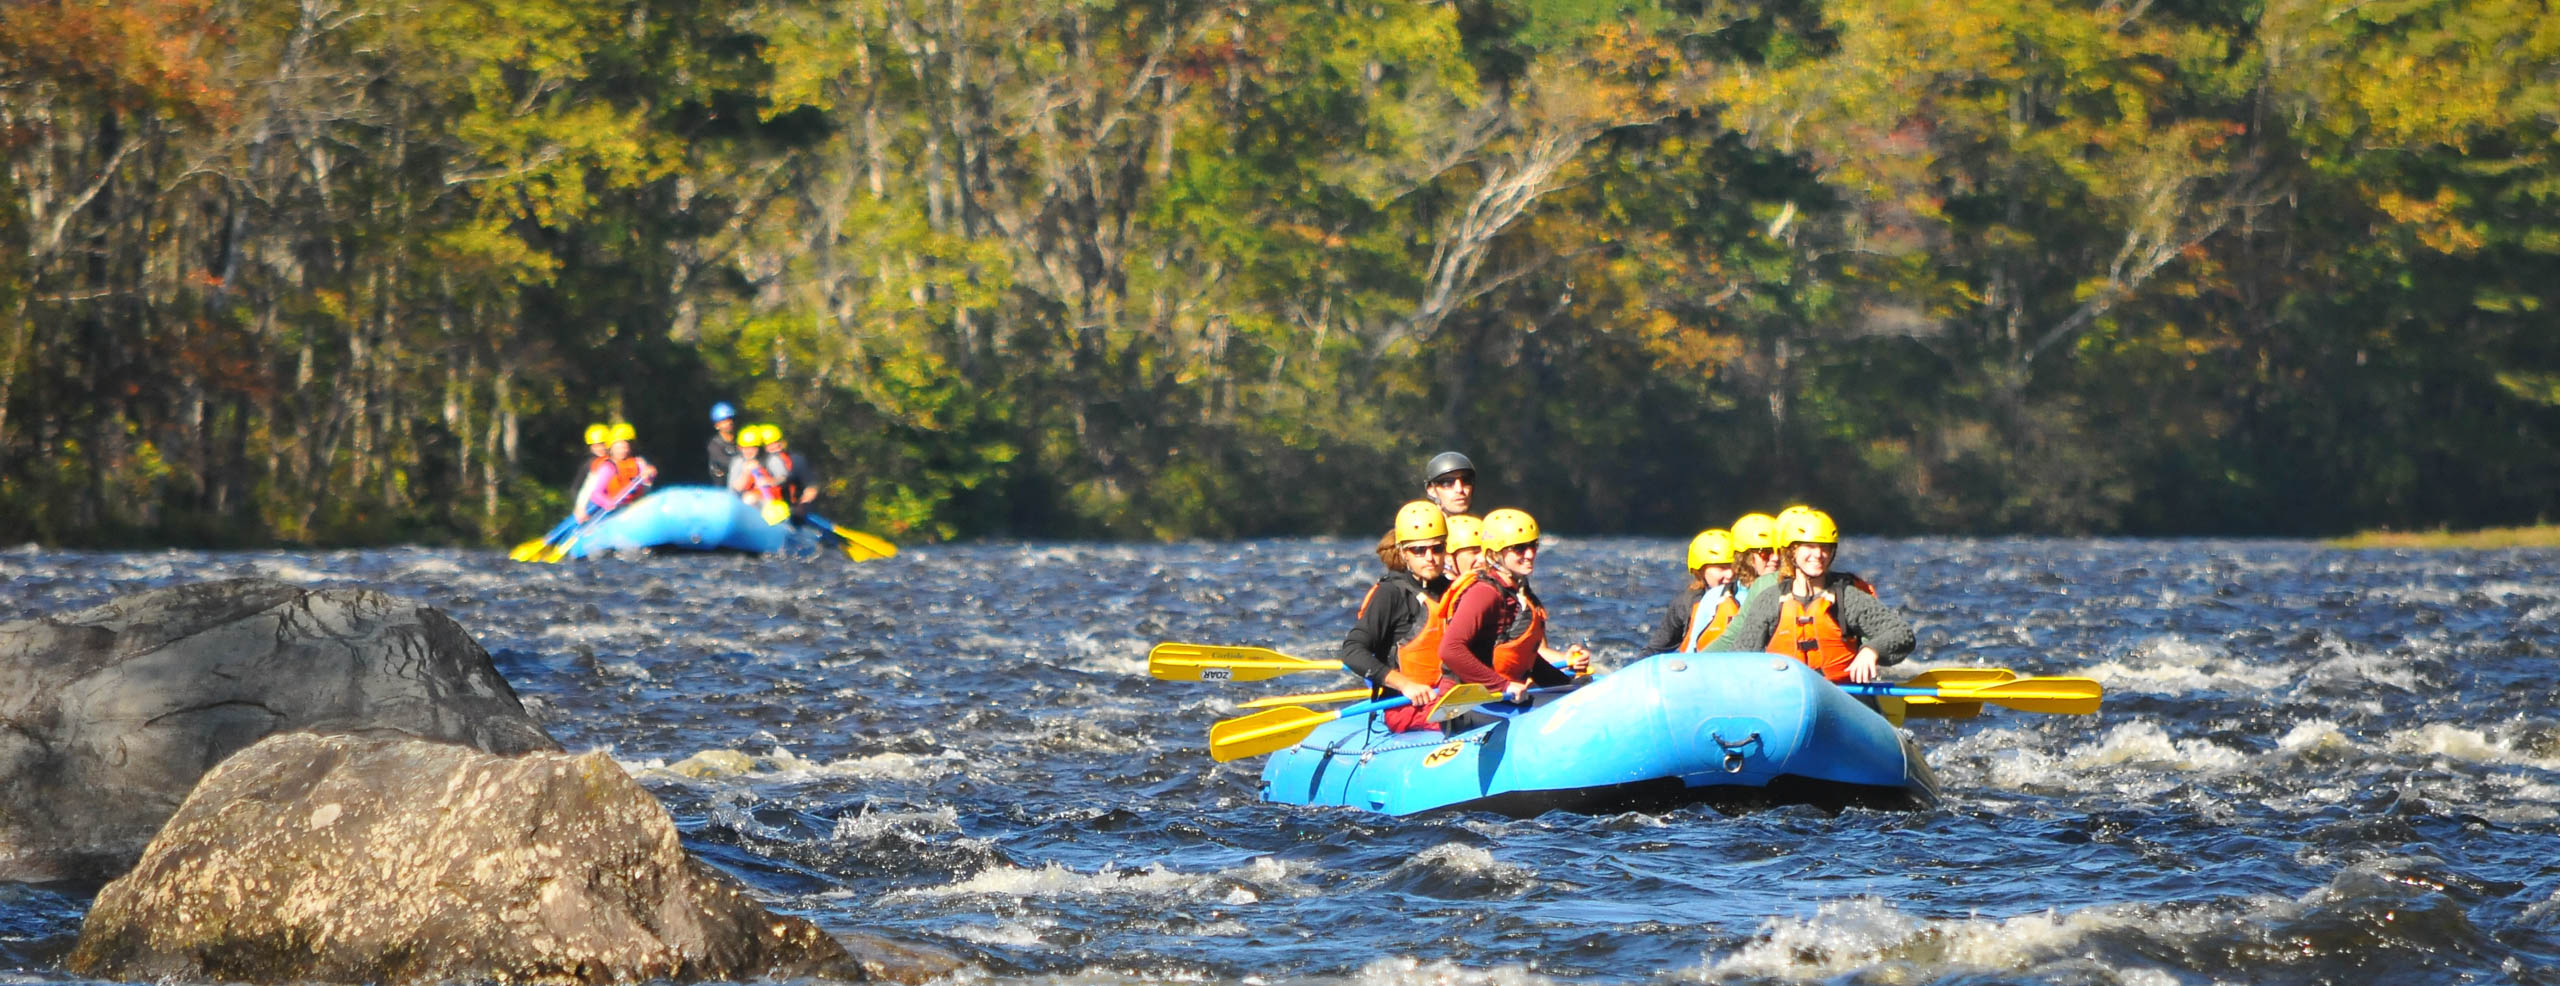 Two groups rafting down a river